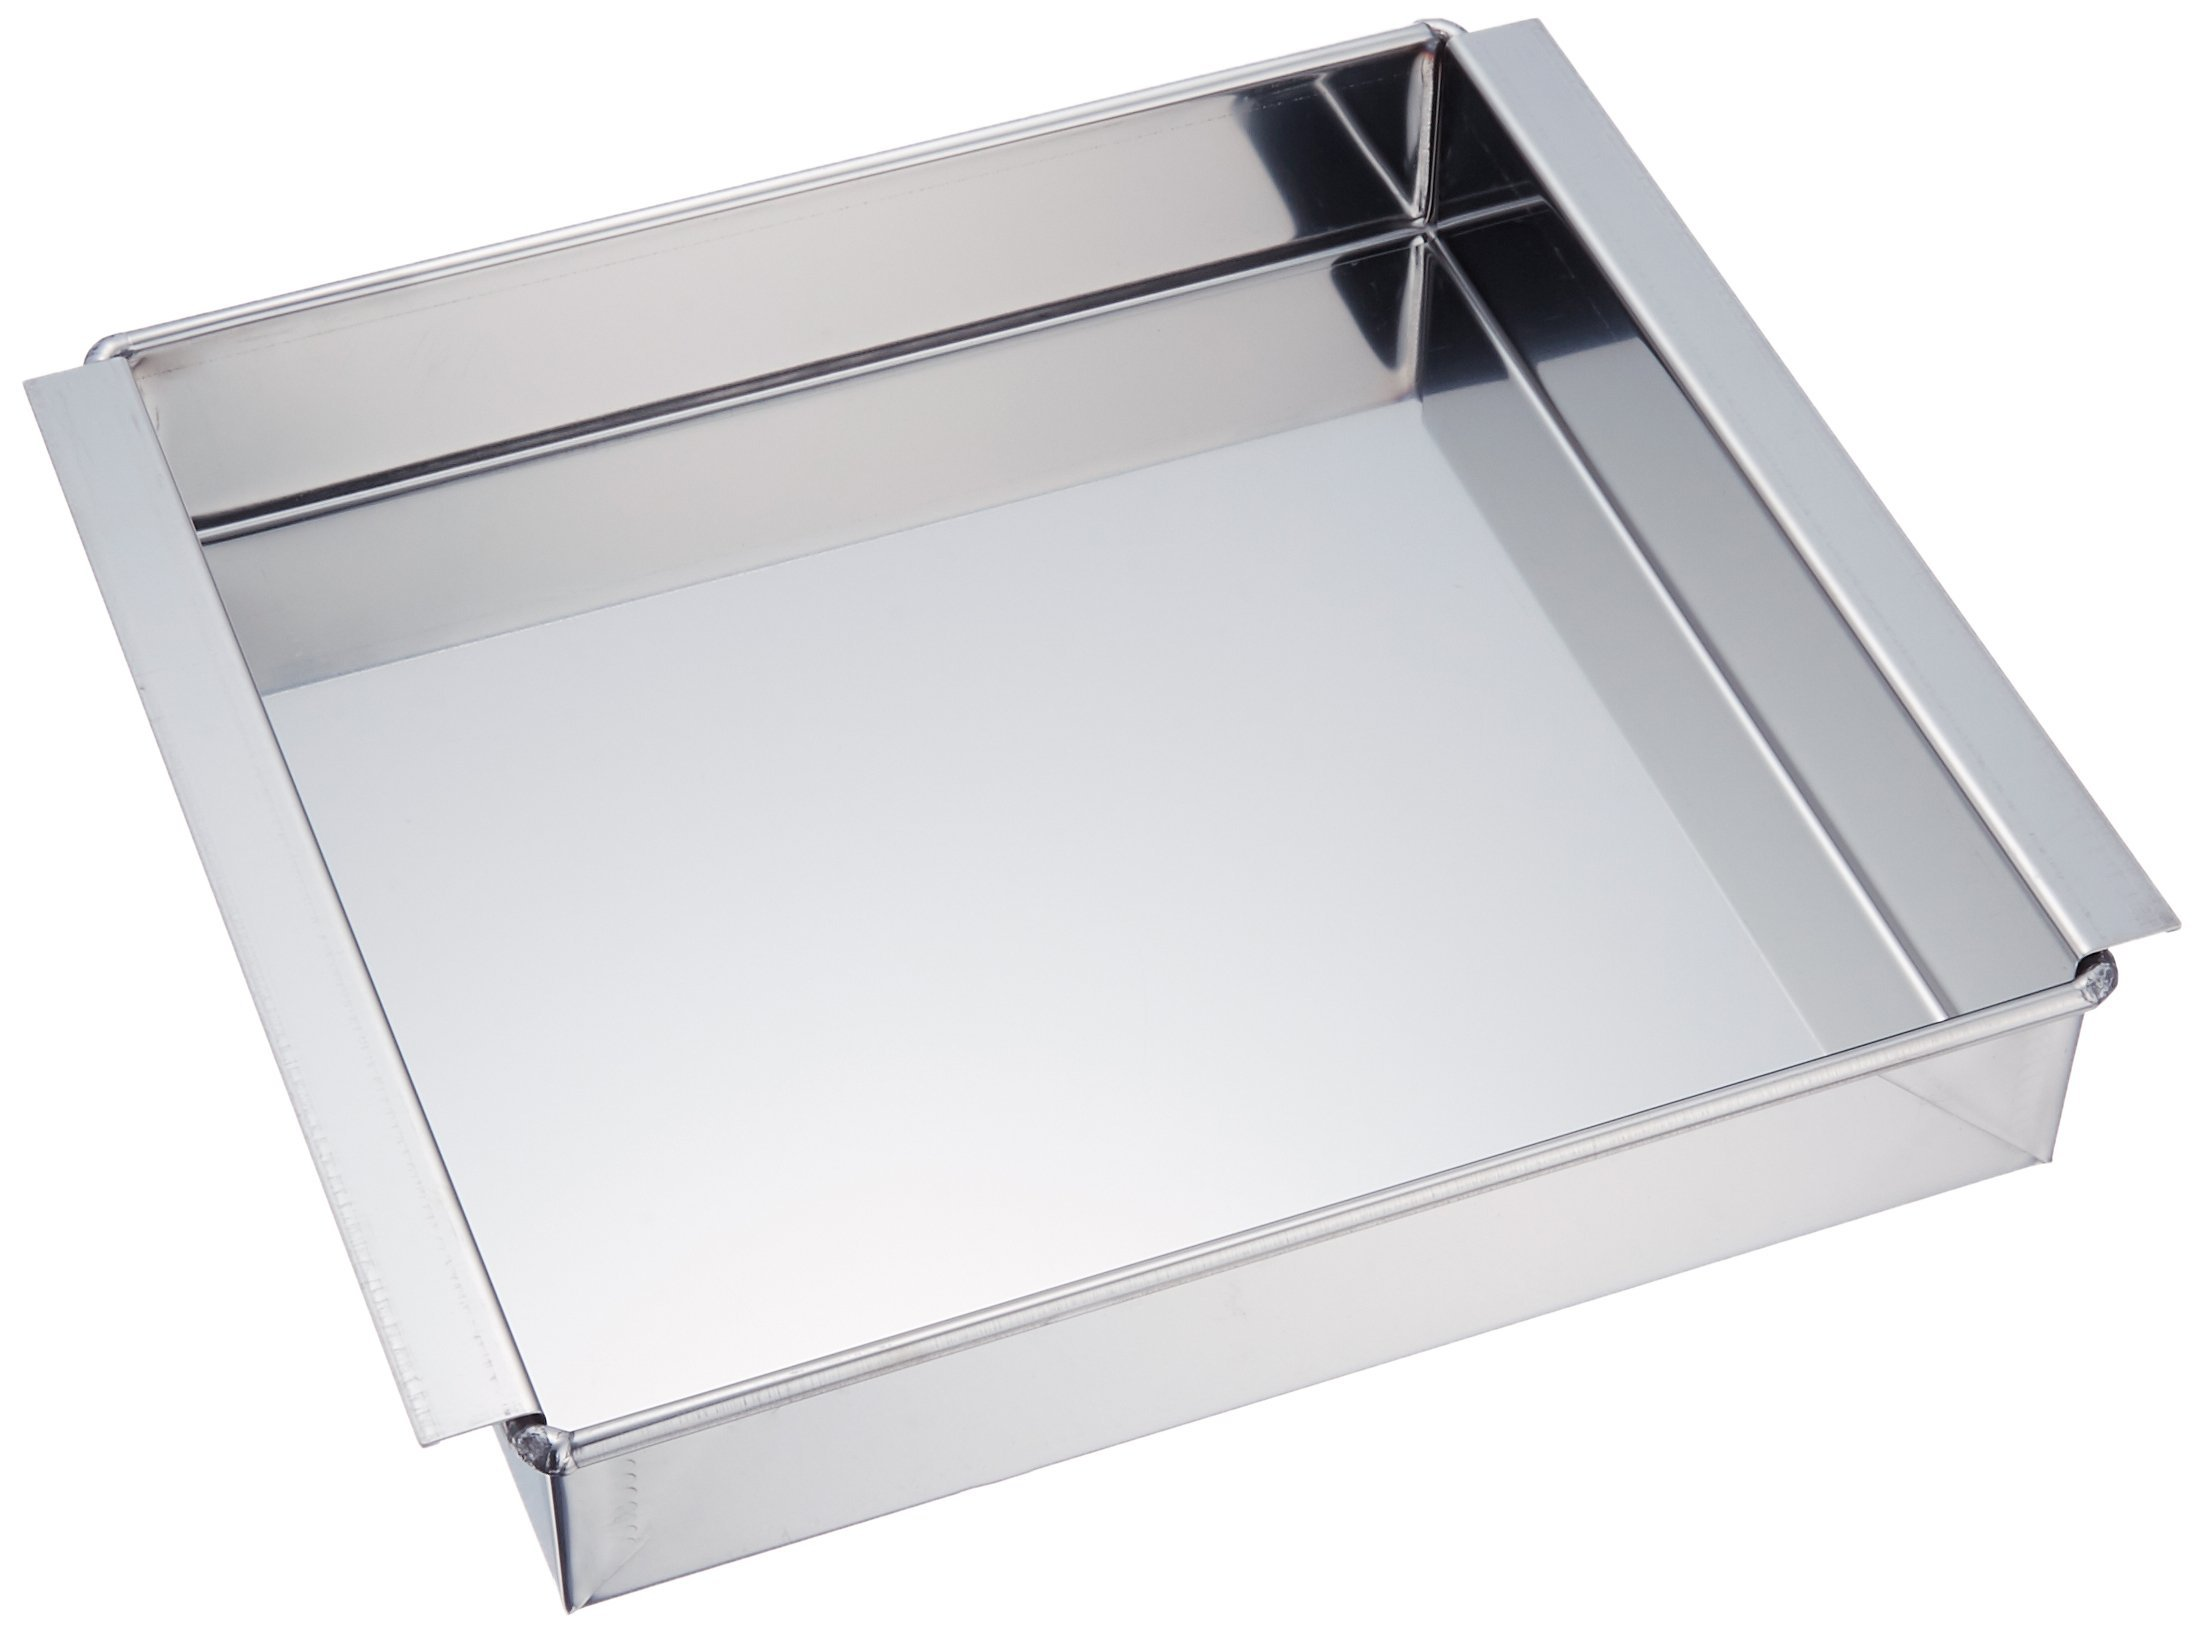 Stainless Mold - 8.4''x8.4'' (21 cm)